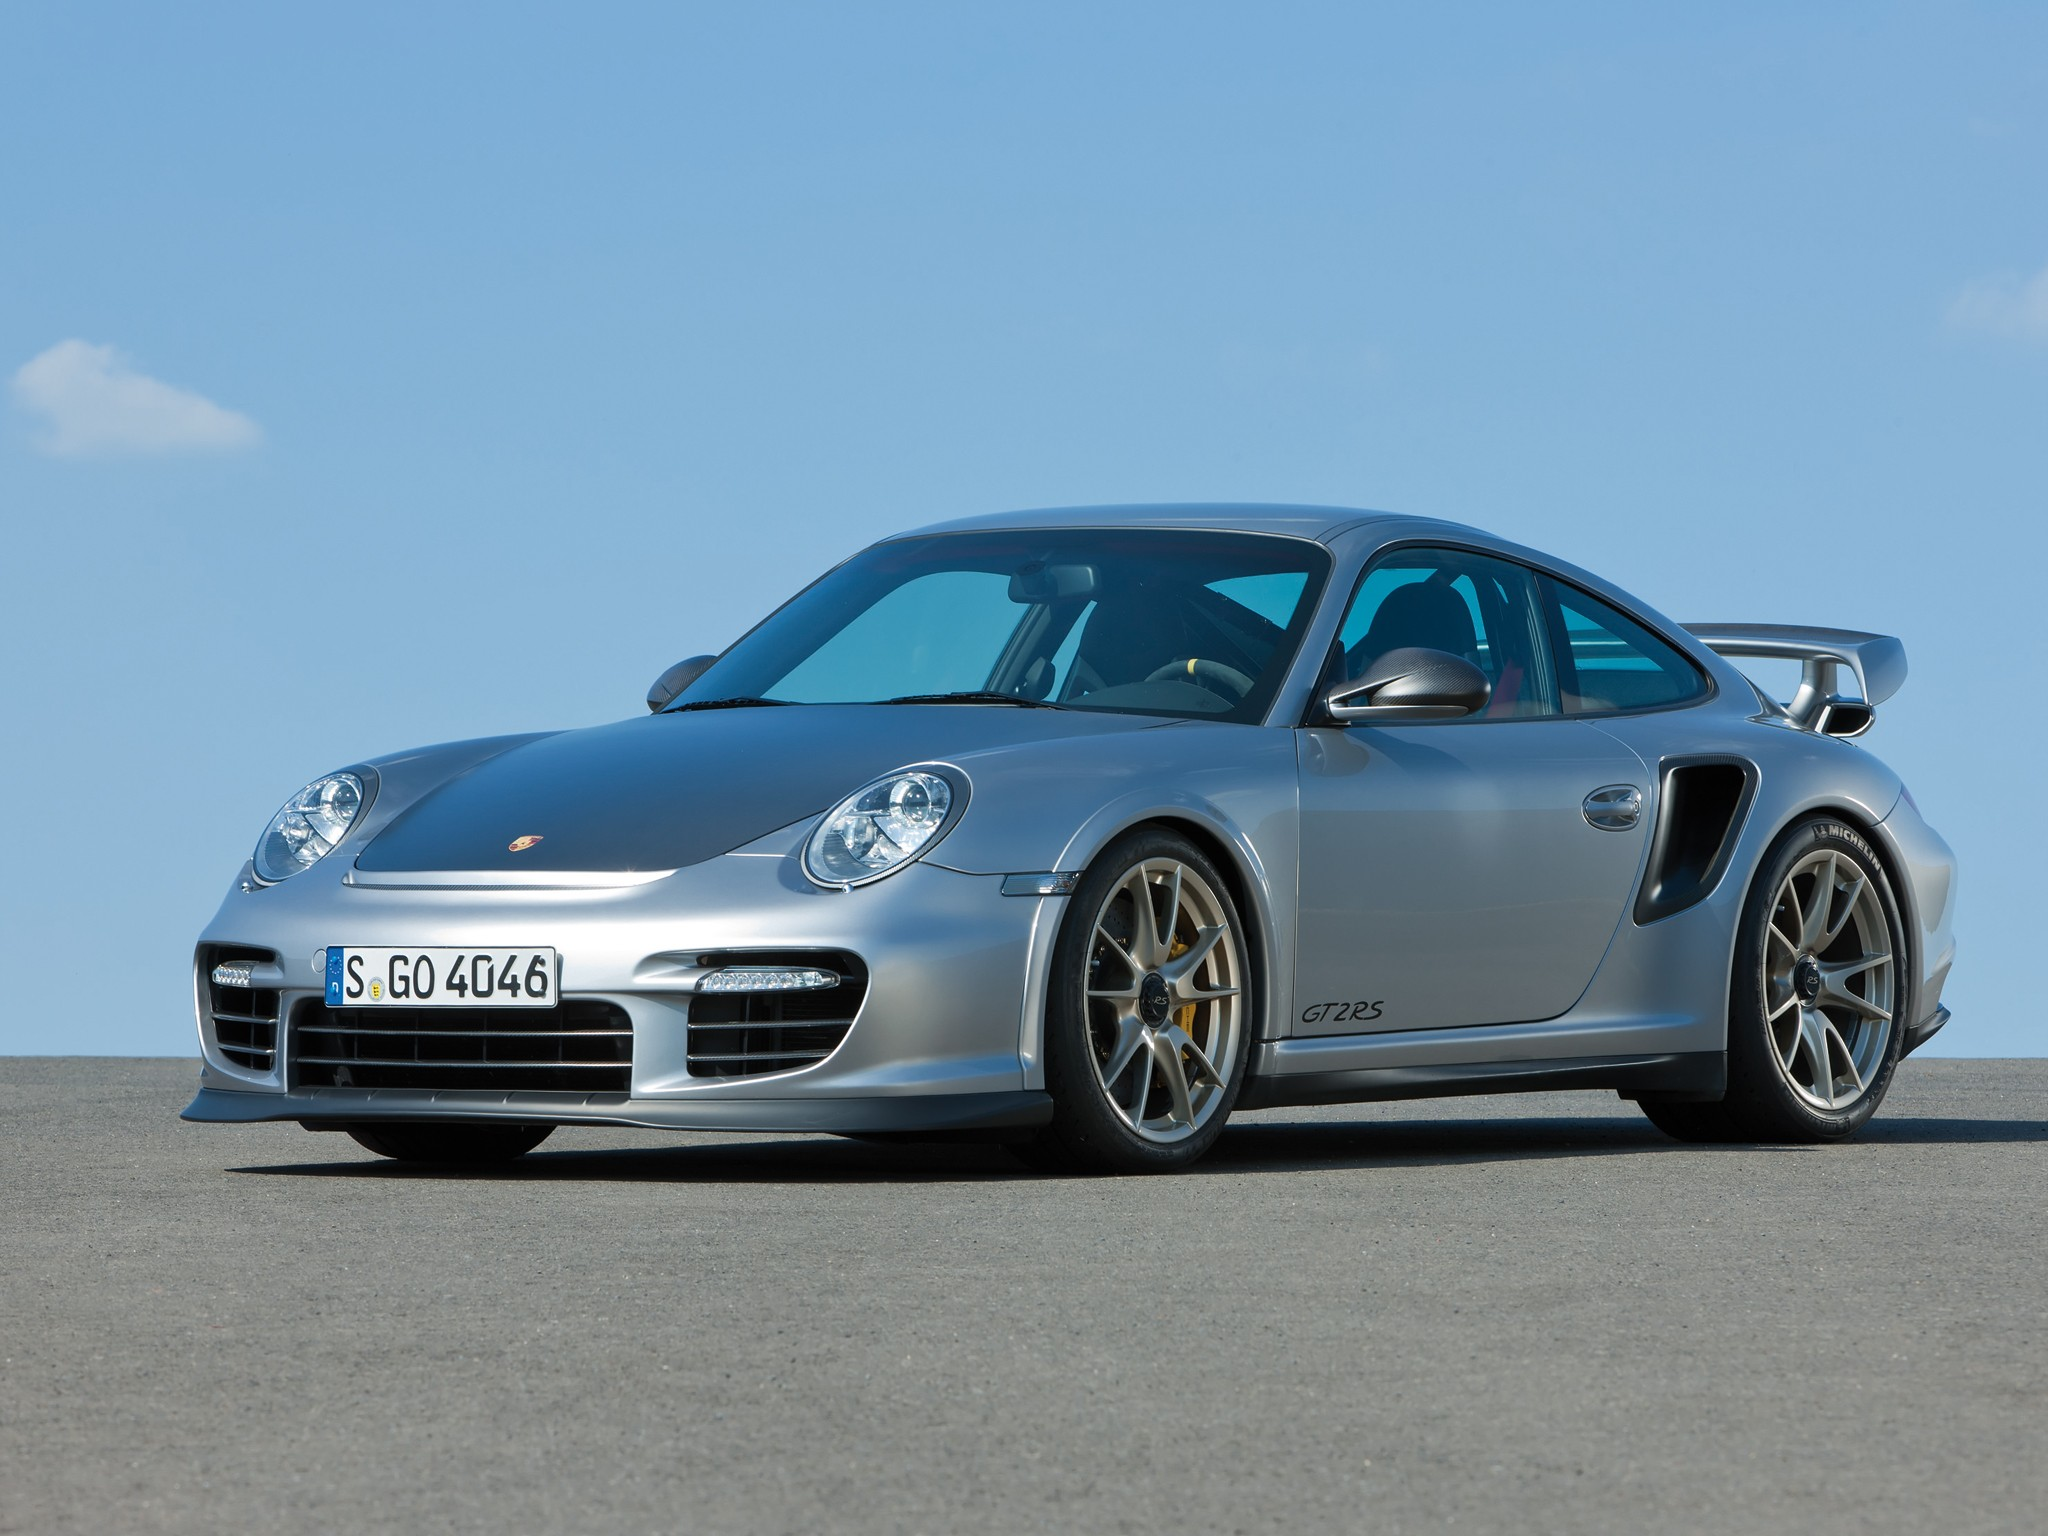 PORSCHE-911-GT2-RS-4327_25 Cozy Porsche 911 Gt2 Rs Wallpaper Cars Trend